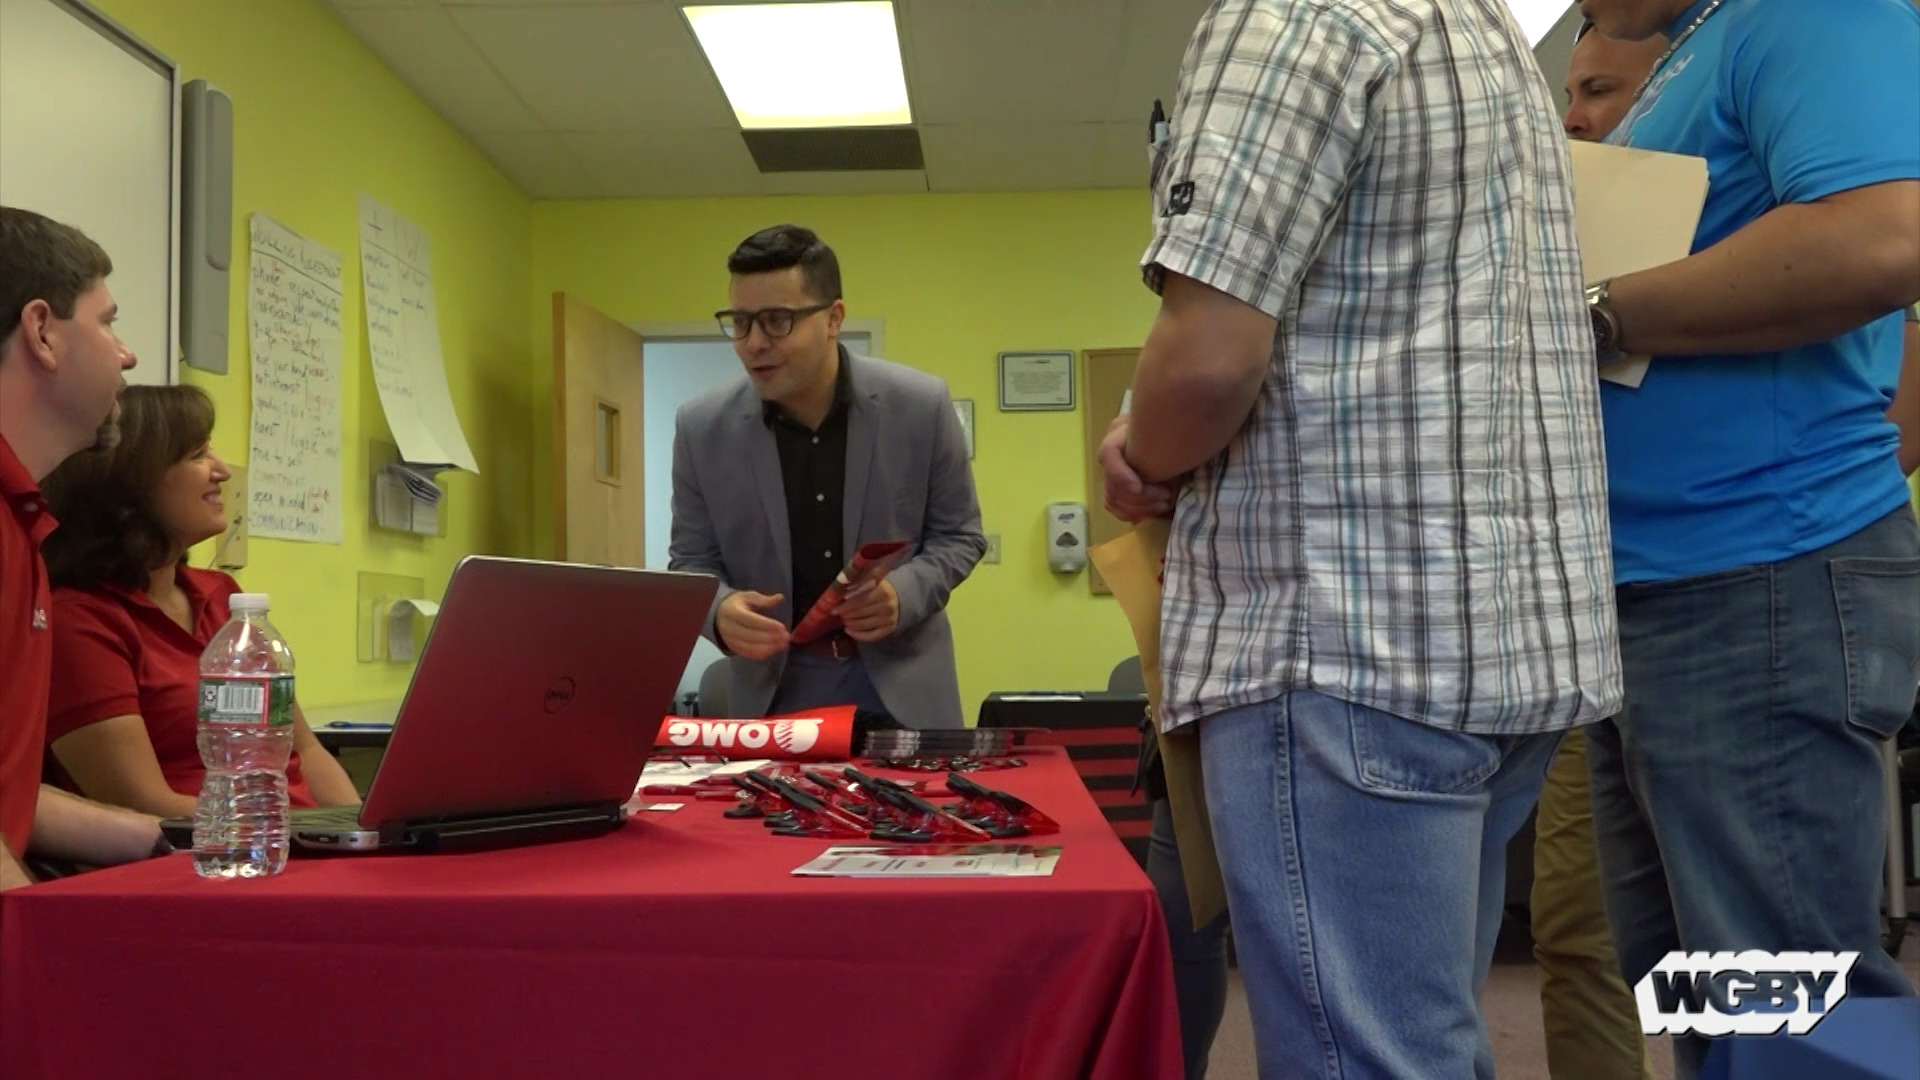 Thanks to funding from an national emergency grant, Hurricane Maria evacuees can access resources, like job fairs, to help them enter the workforce in Mass.